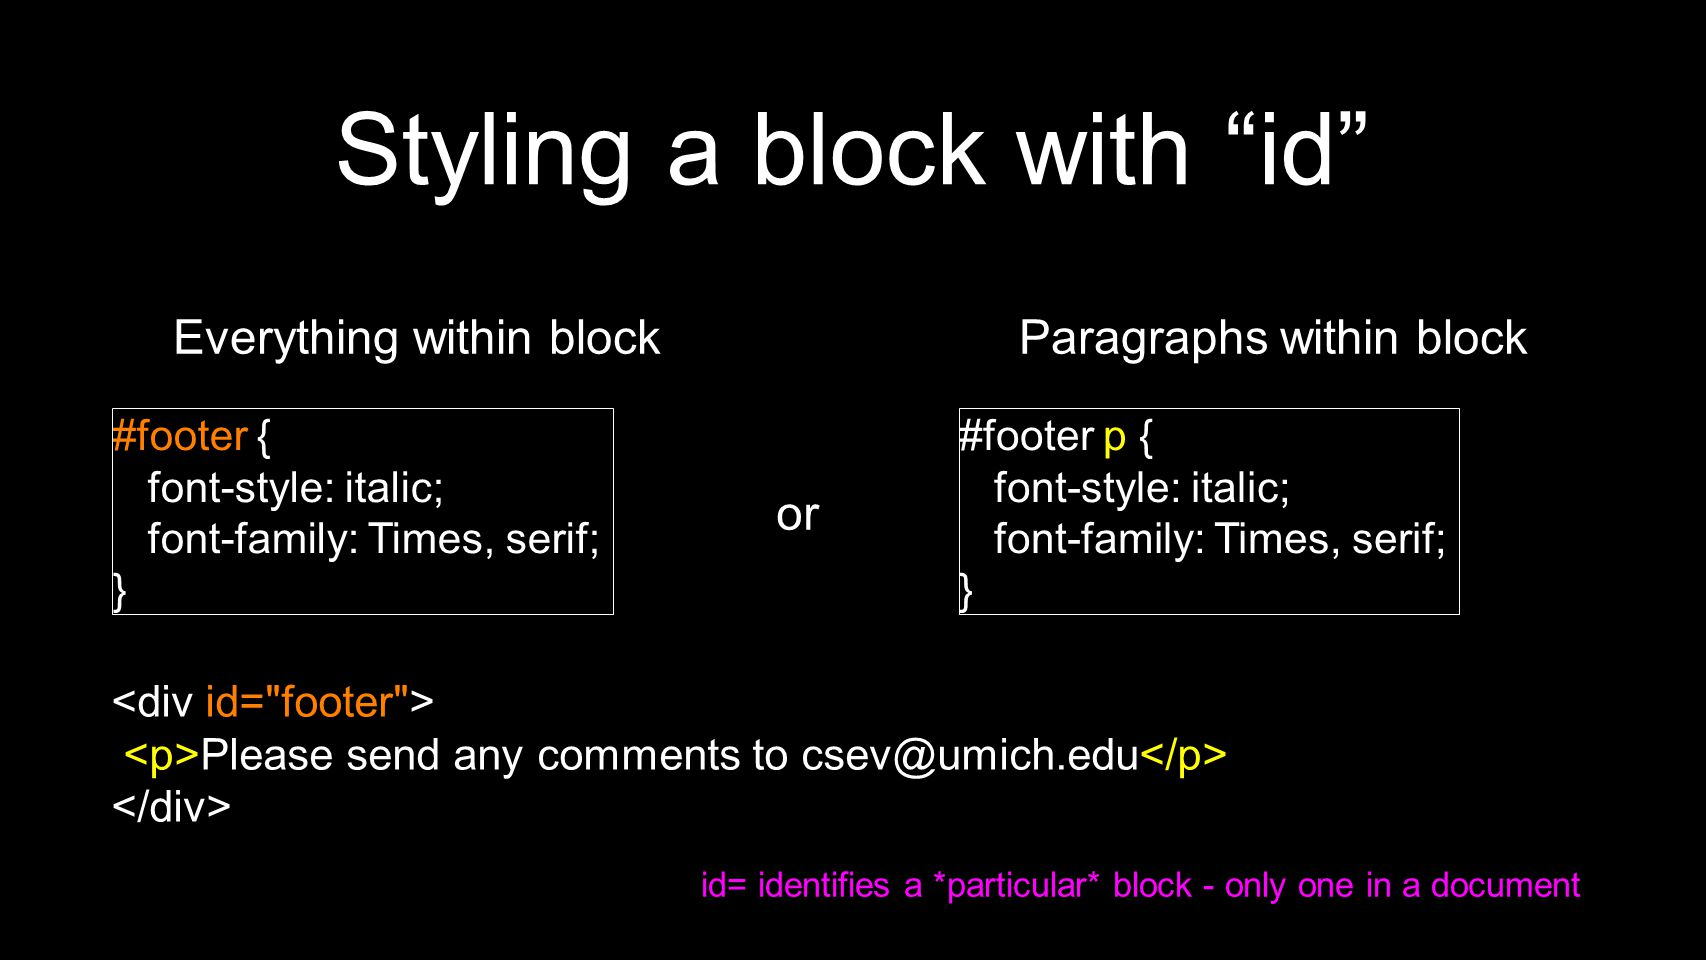 Styling a block with id #footer { font-style: italic; font-family: Times, serif; } Please send any comments to csev@umich.edu #footer p { font-style: italic; font-family: Times, serif; } or Everything within blockParagraphs within block id= identifies a *particular* block - only one in a document